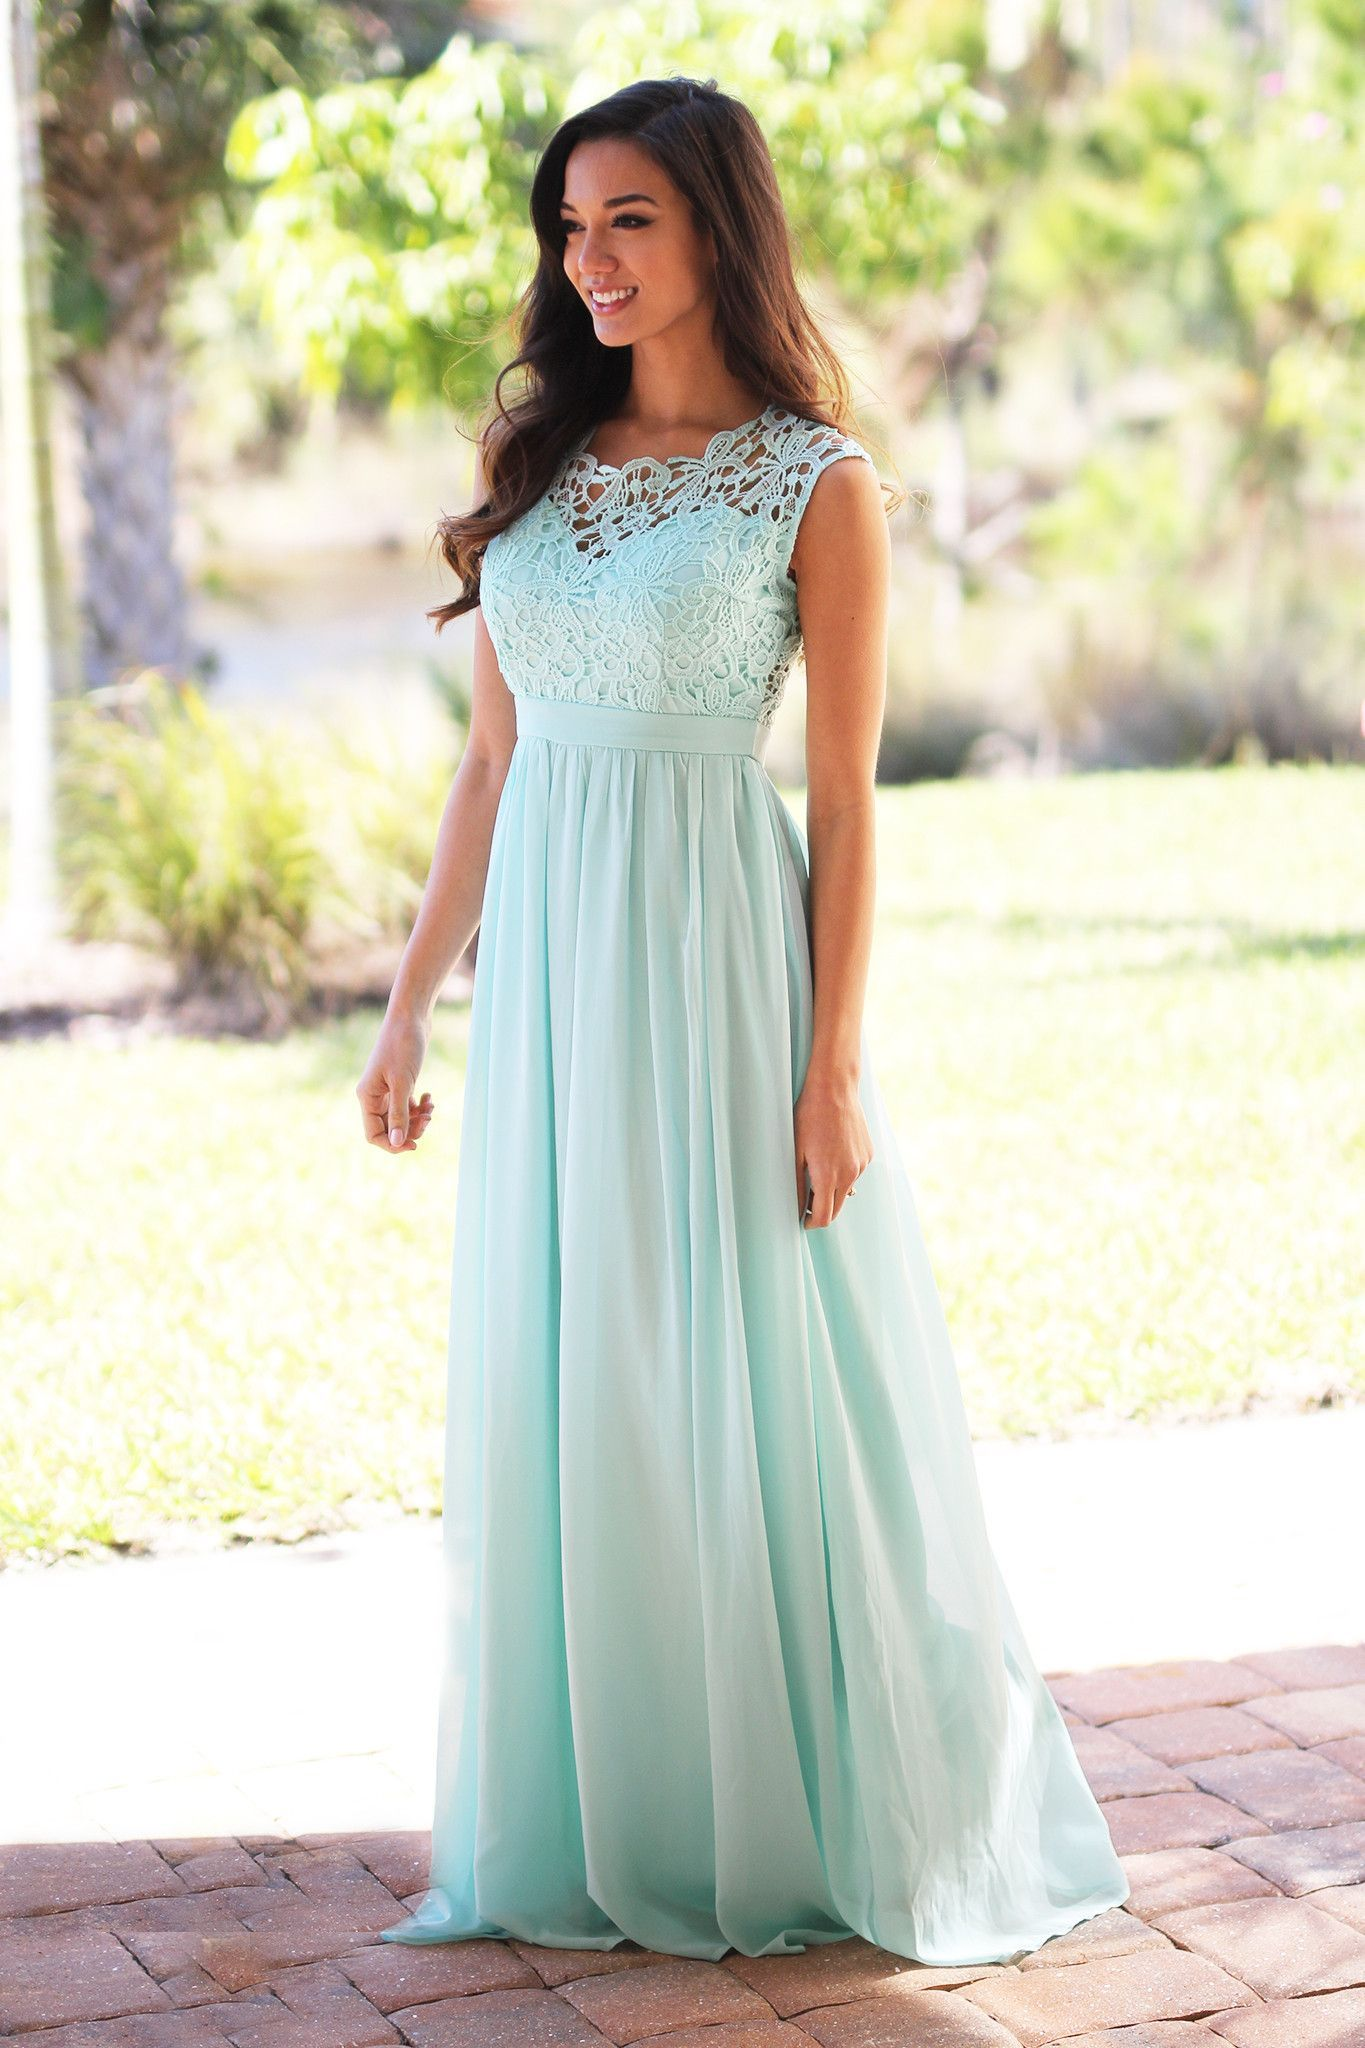 Mint Crochet Maxi Dress with Tulle Back | Maxi dresses, Crochet and ...